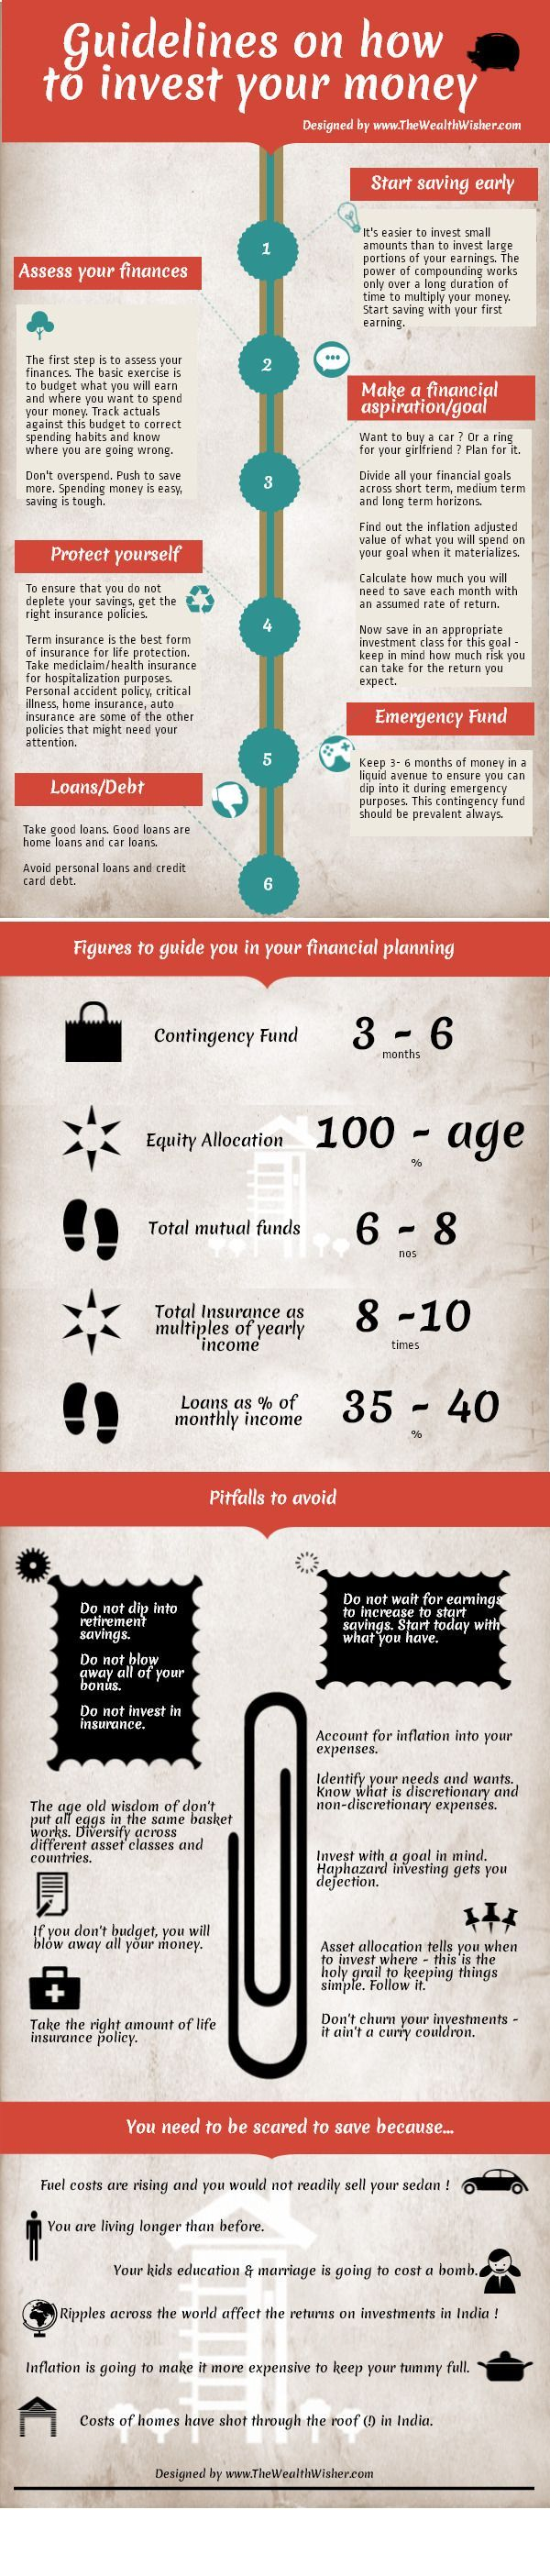 Guidelines on investing your money wisely - Pretty good info. except car loans are NOT good loans - Single people do NOT need life insurance